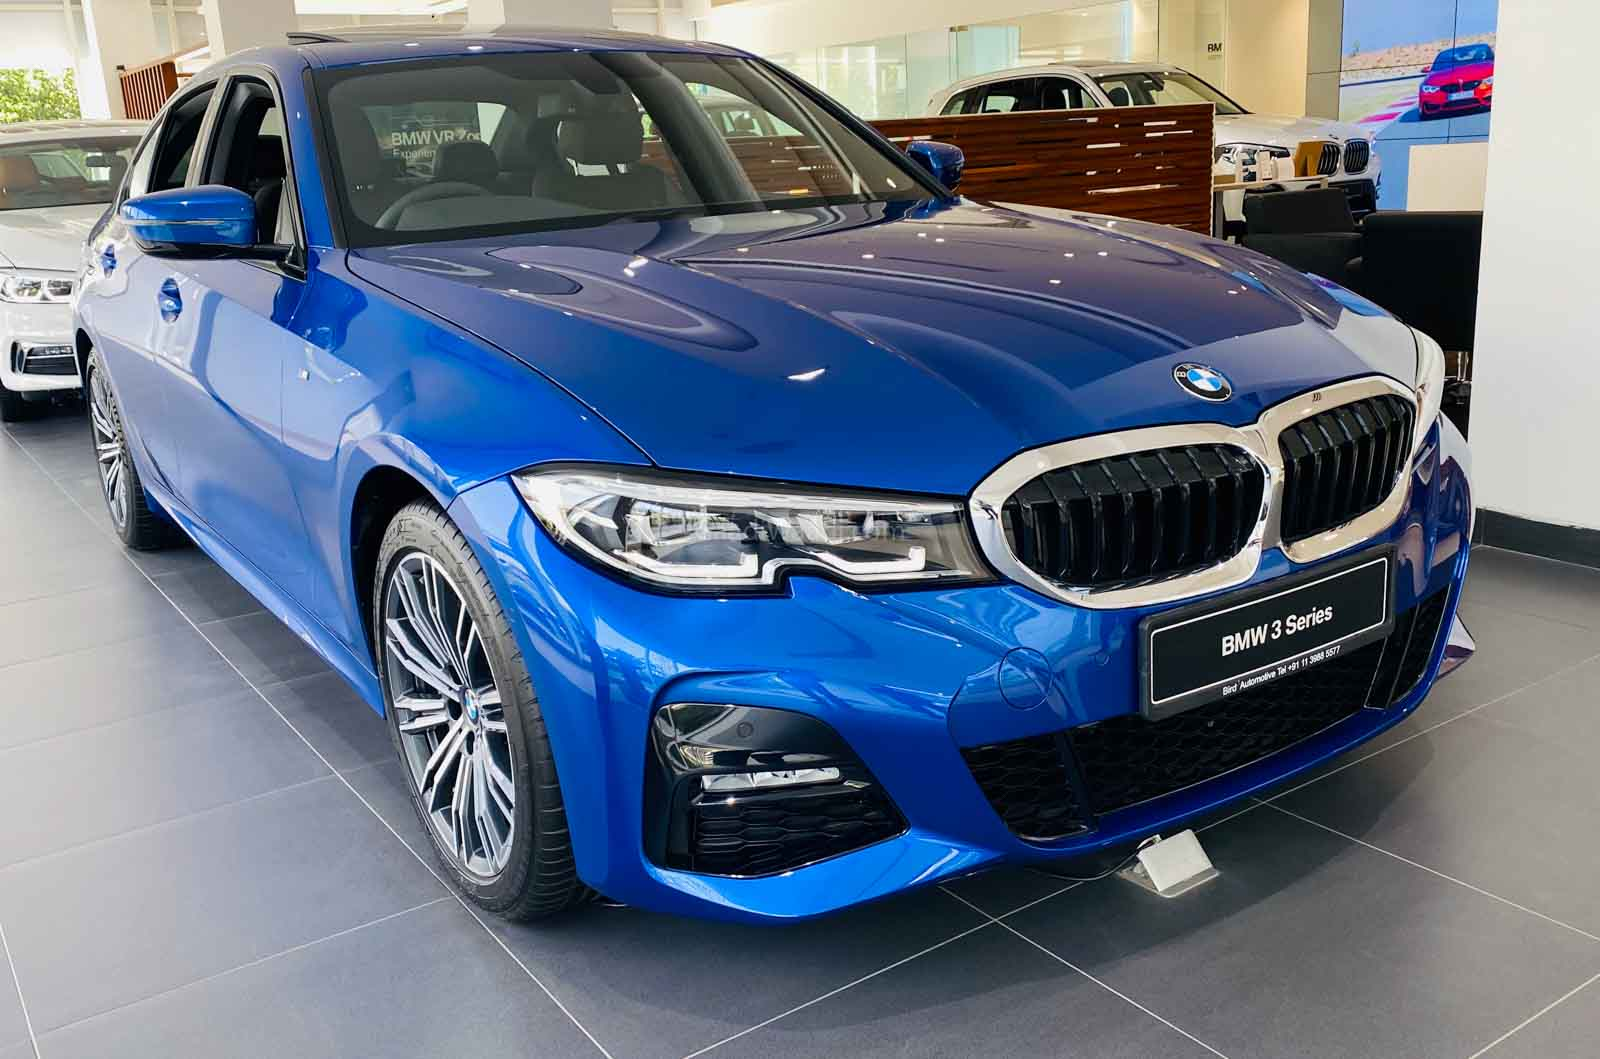 What Makes The Bmw 3 Series The Most Vfm Luxury Car In India